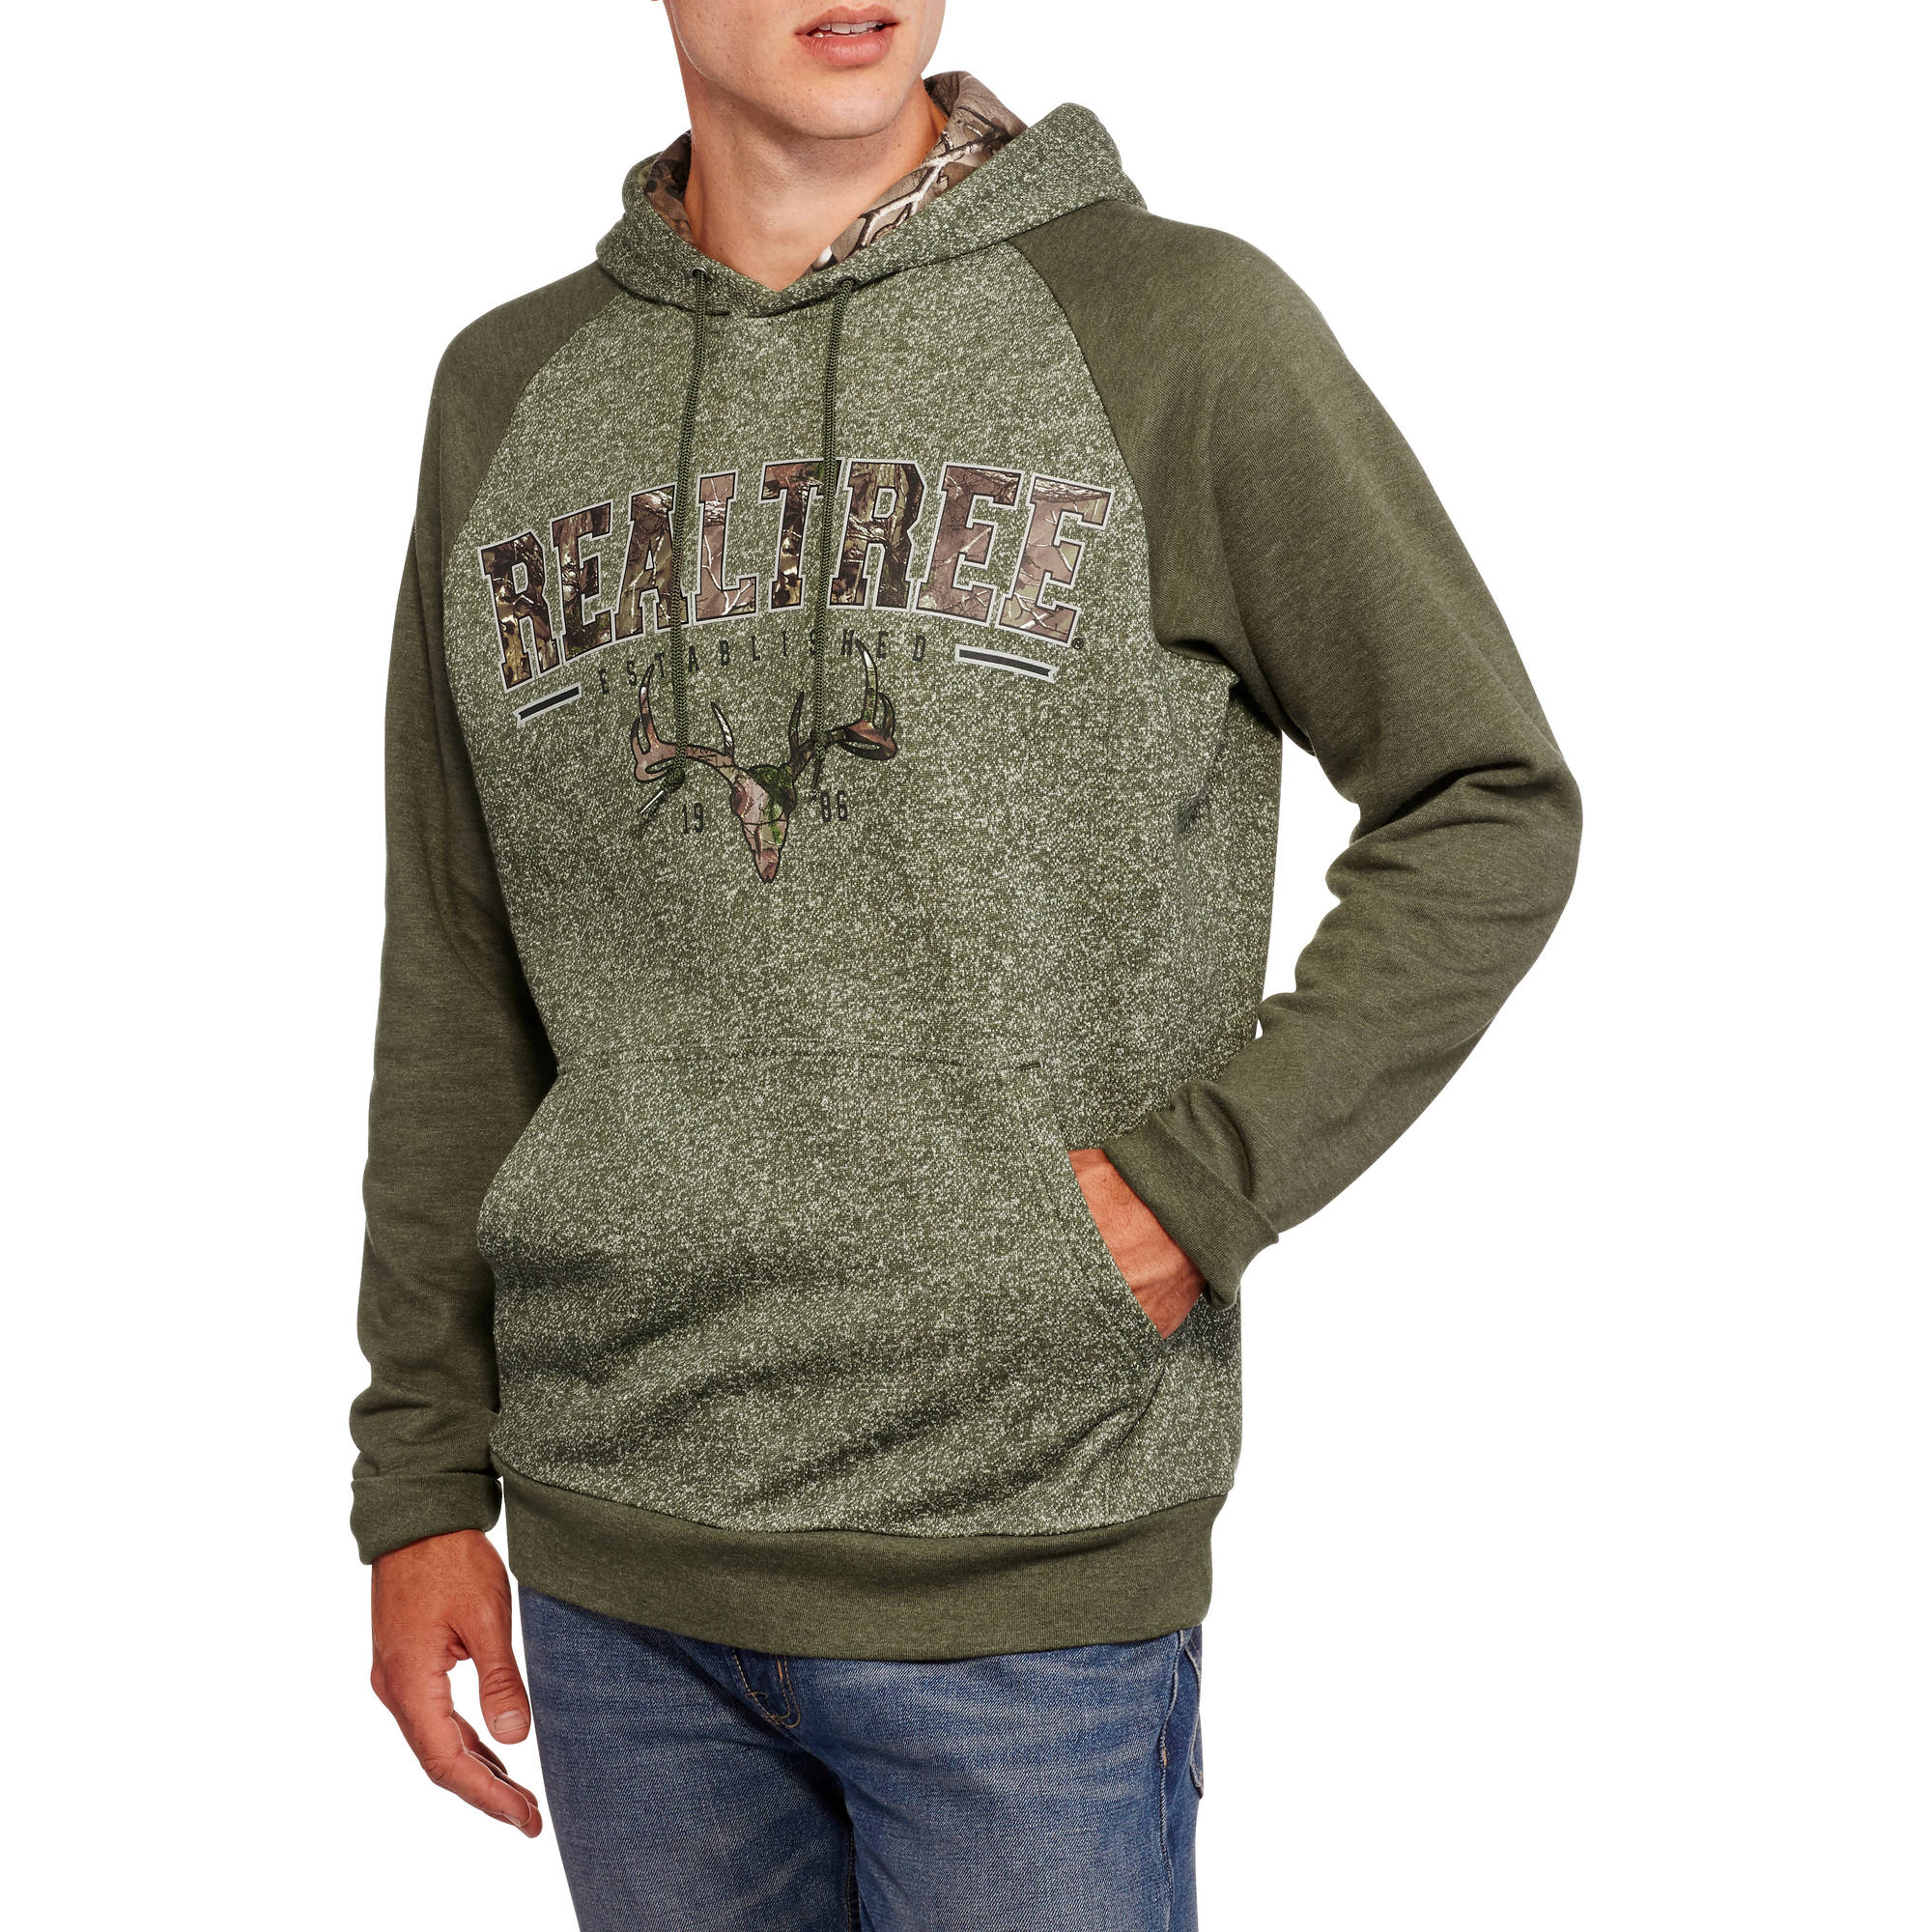 Realtree Big Men's Graphic Fleece, 2XL